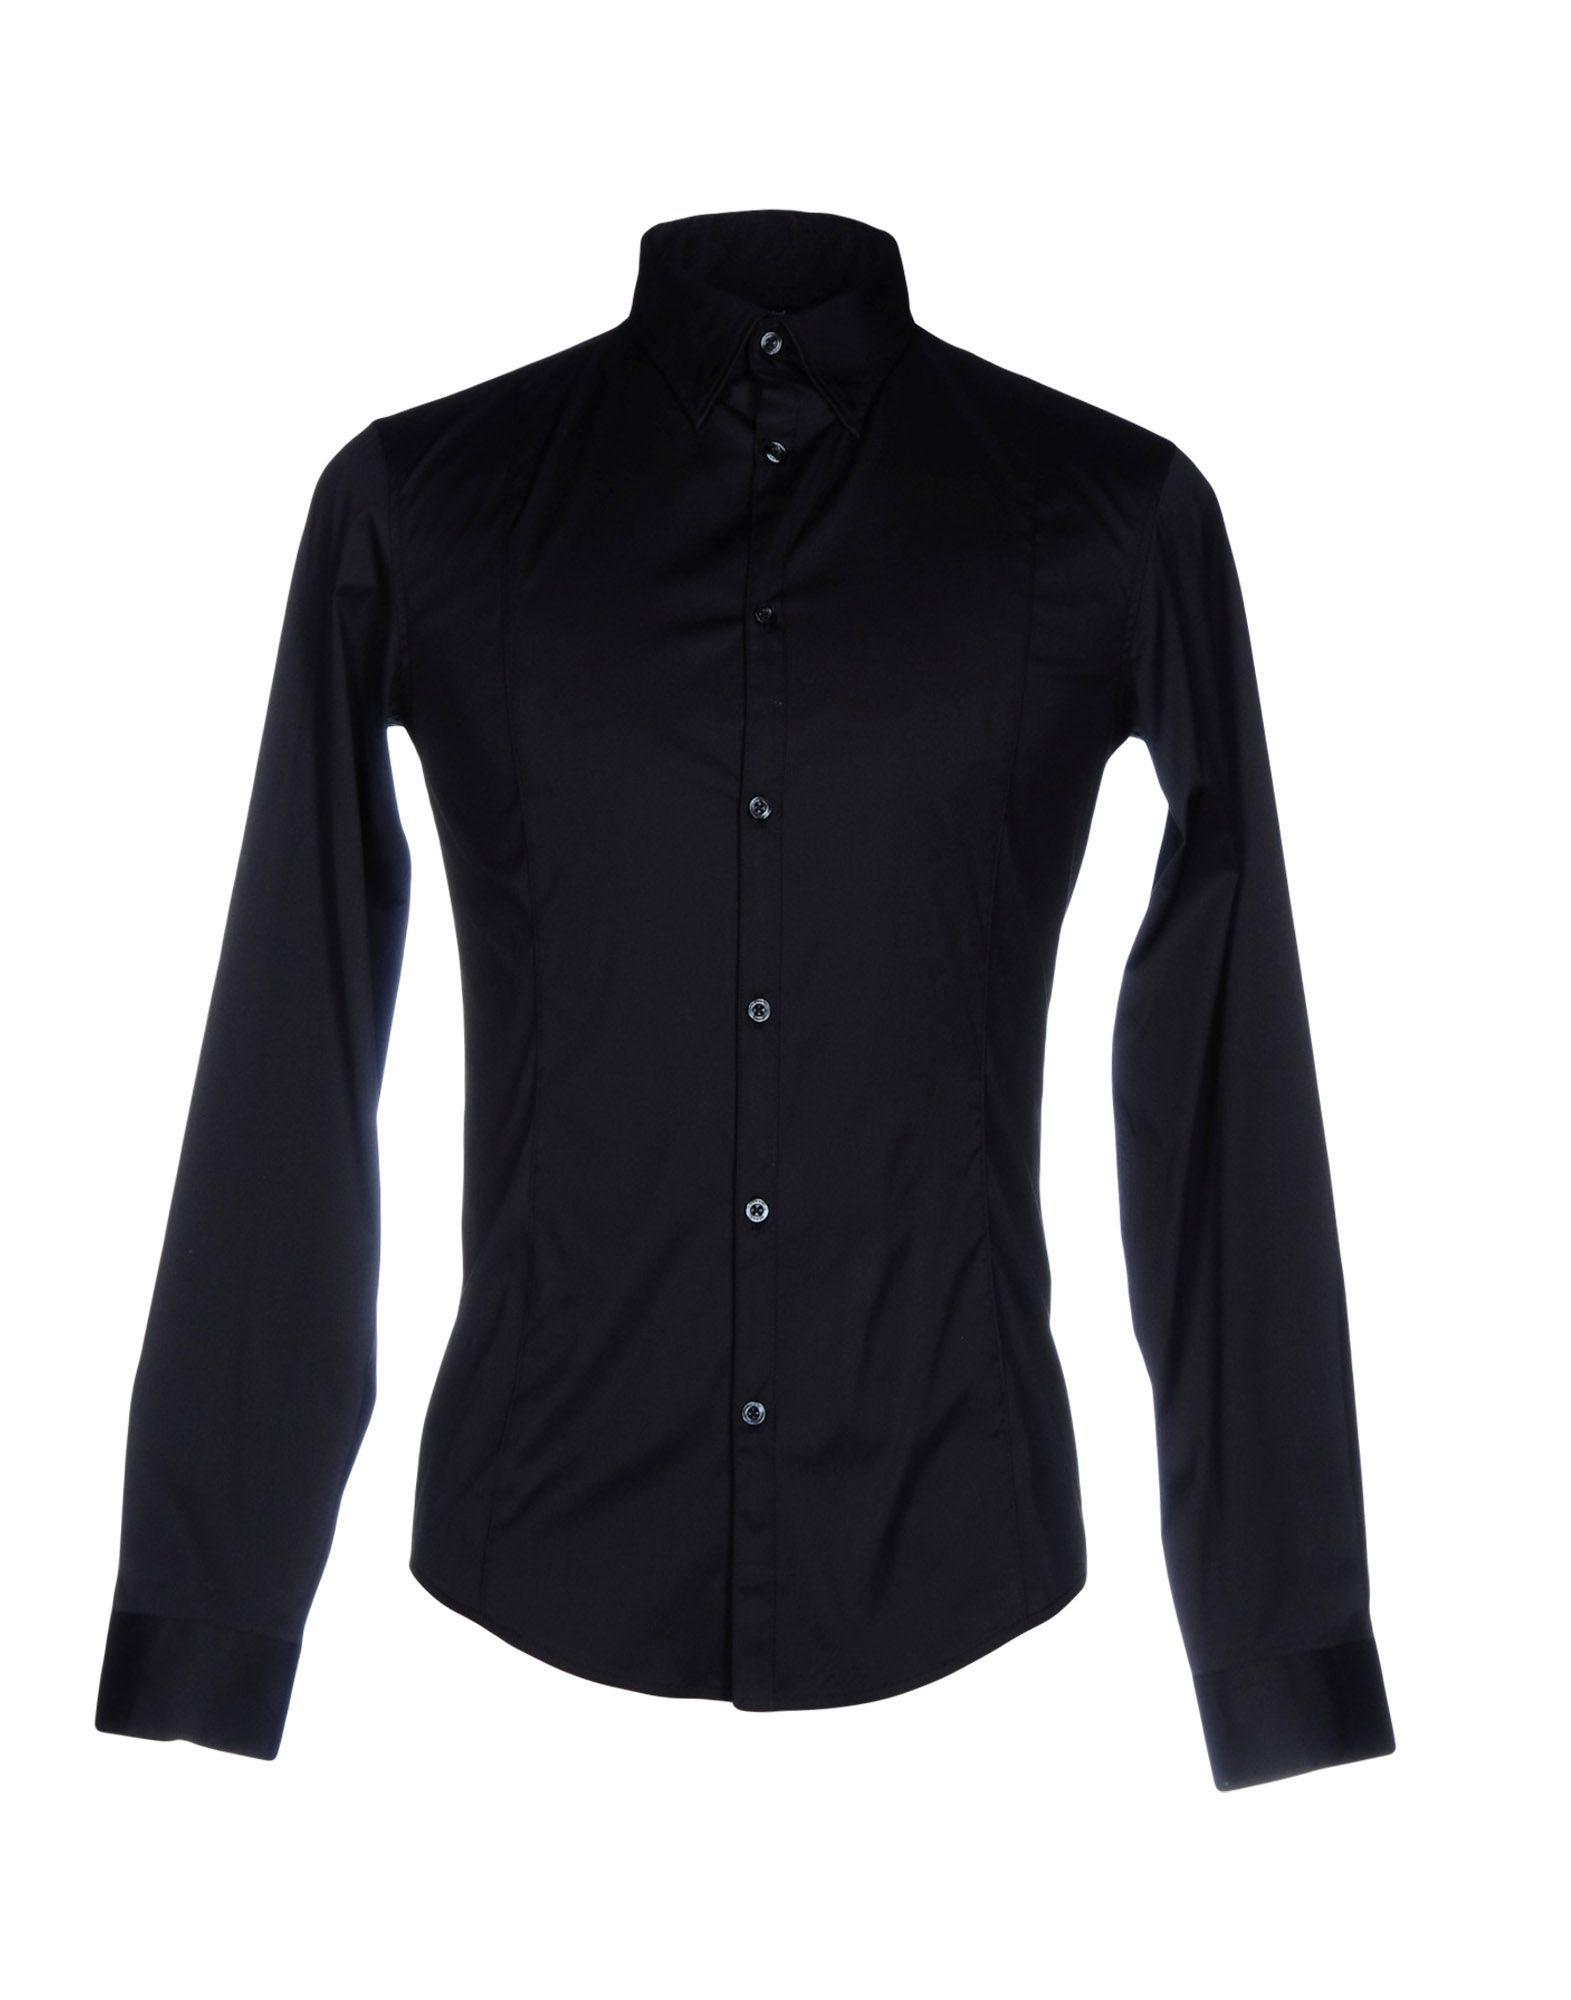 1006219b45 Lyst - Armani Jeans Shirt in Blue for Men